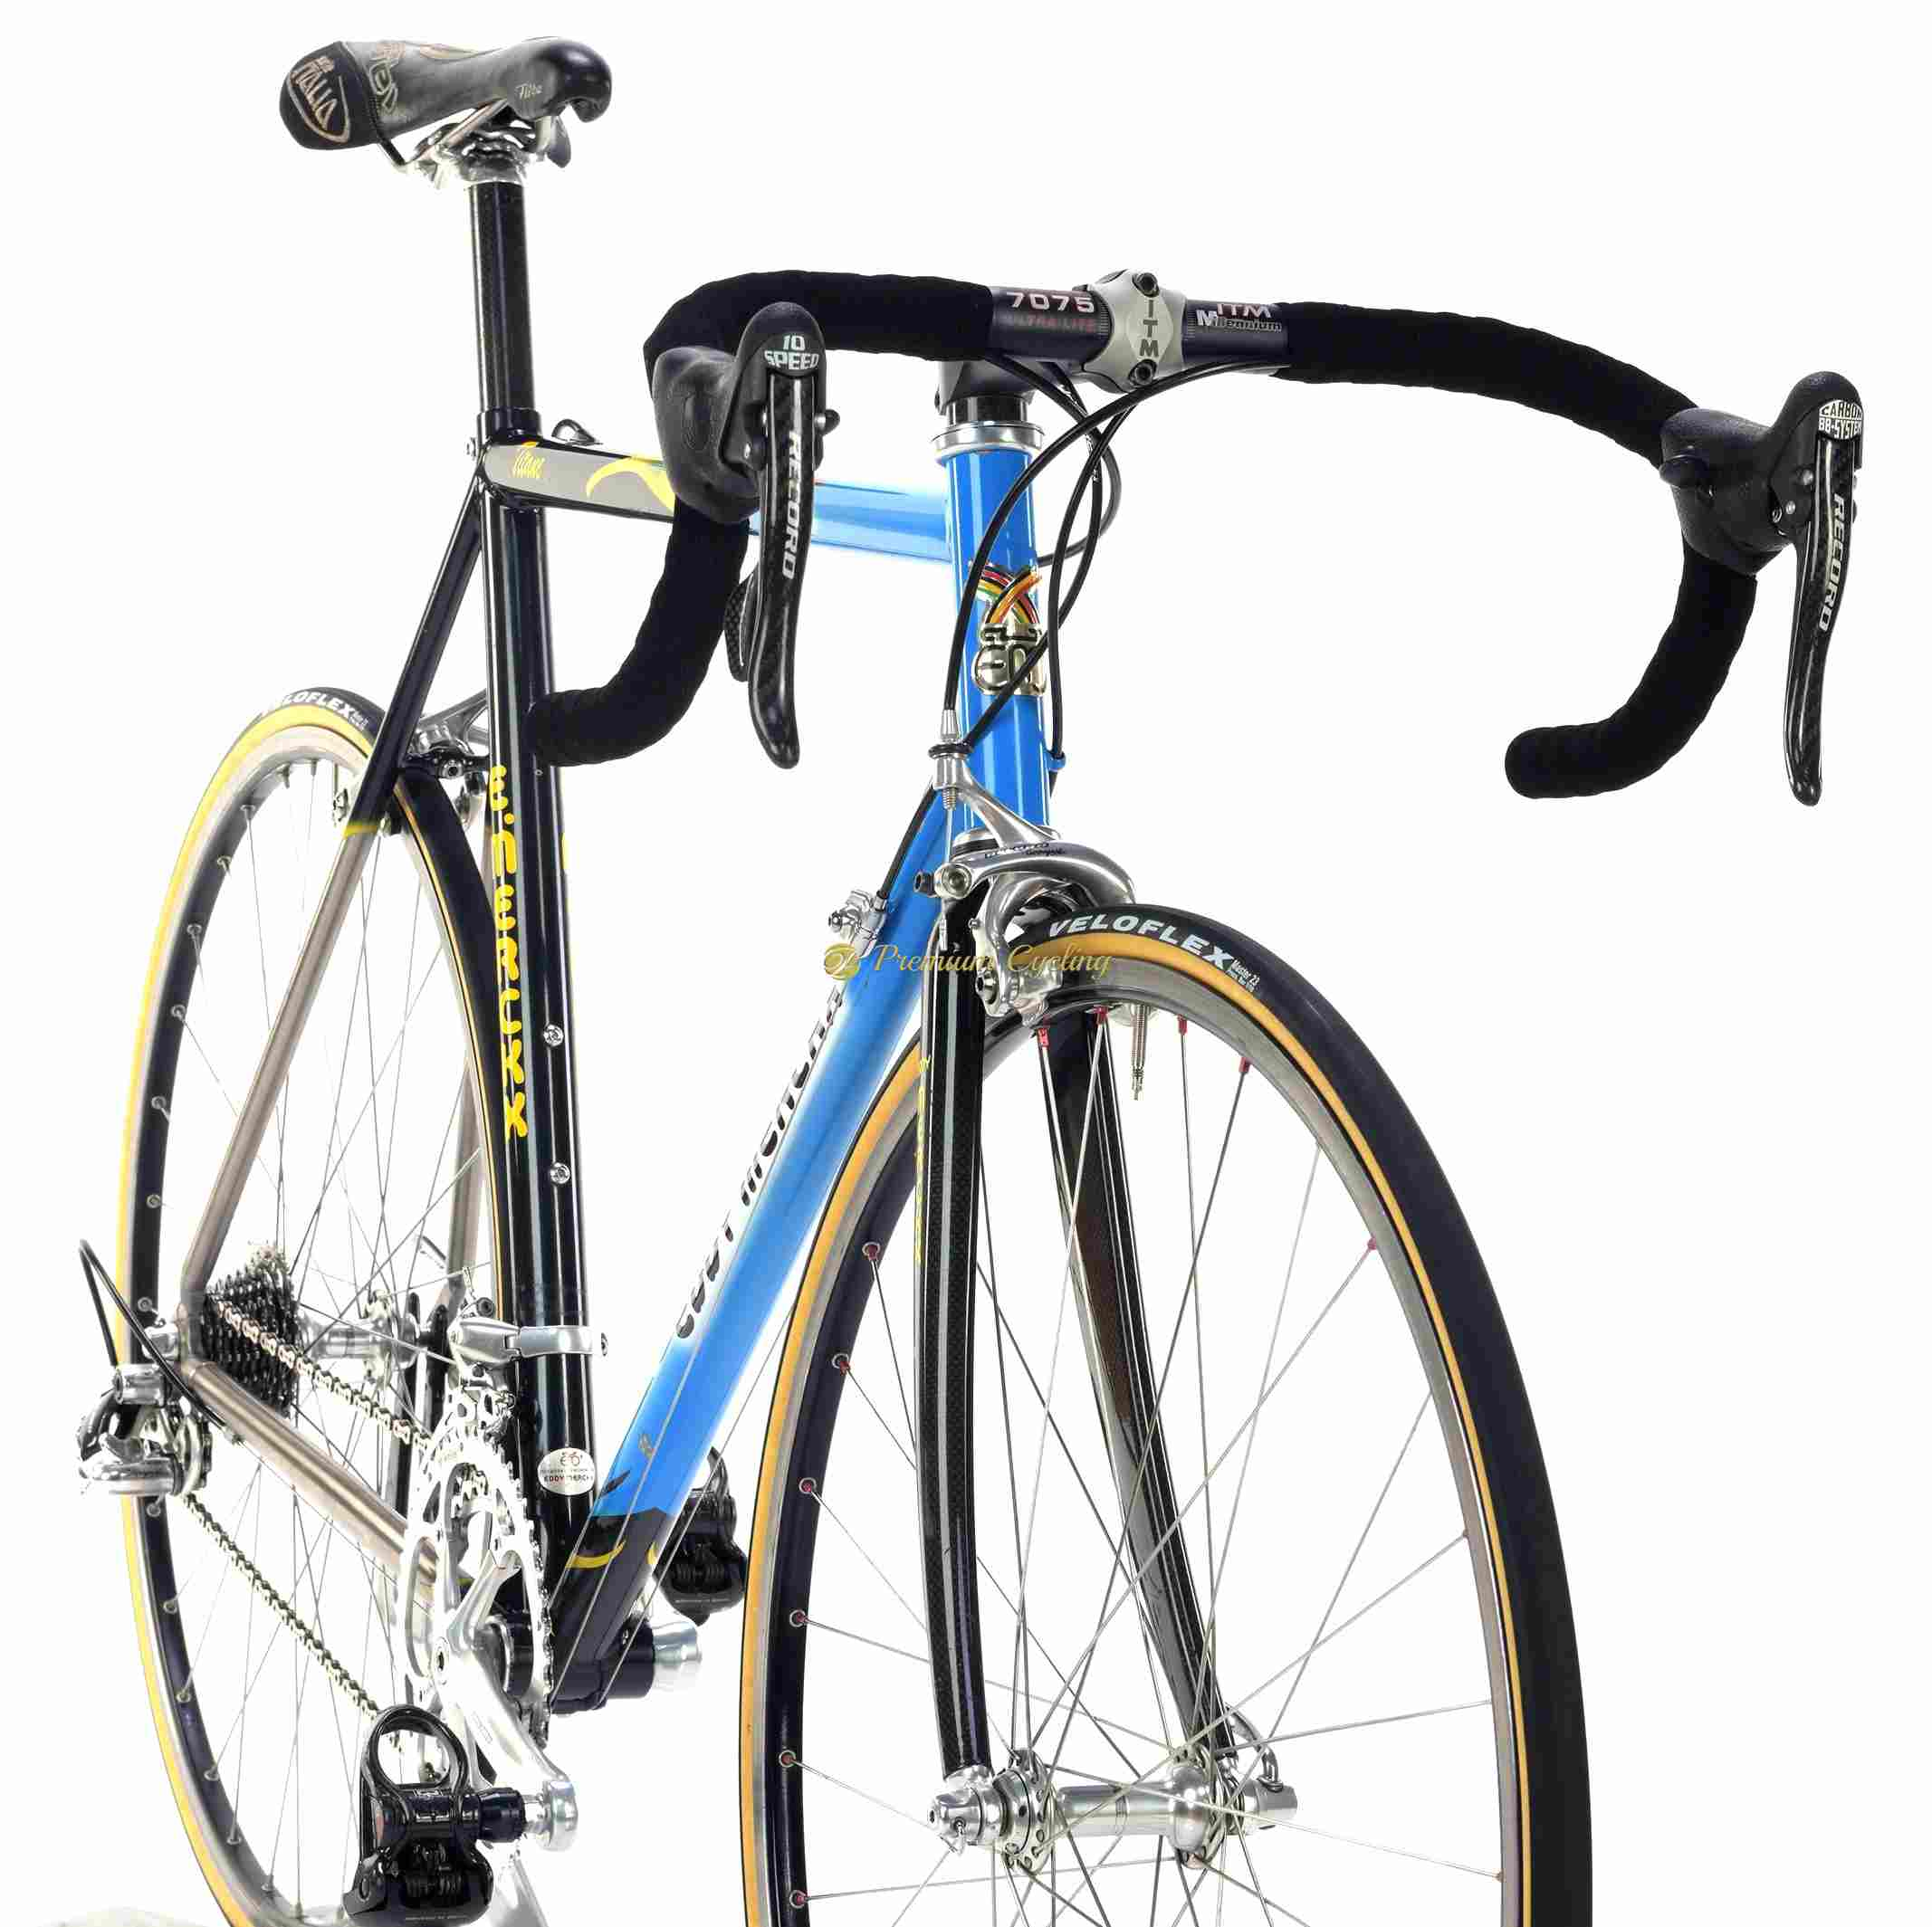 Eddy Merckx Titane Team Campagnolo Record 10s 2000 Sold Premium Cycling Website For Steel And Collectible Vintage Bikes Parts And Clothing